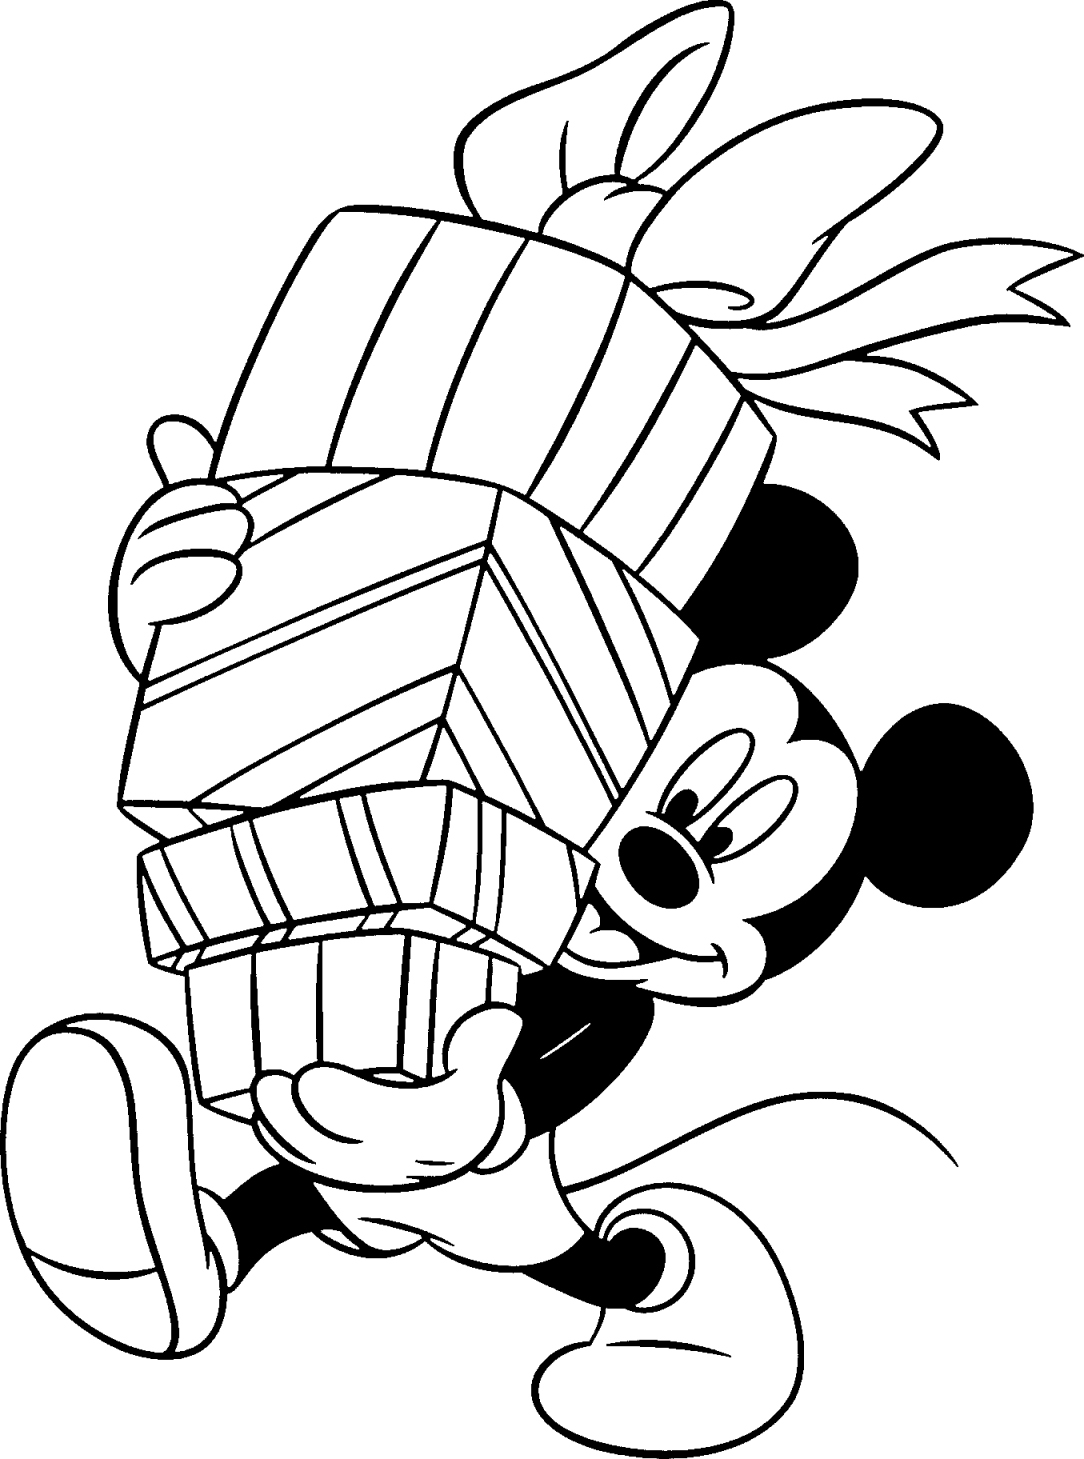 disney coloring worksheets disney coloring pages to download and print for free disney worksheets coloring